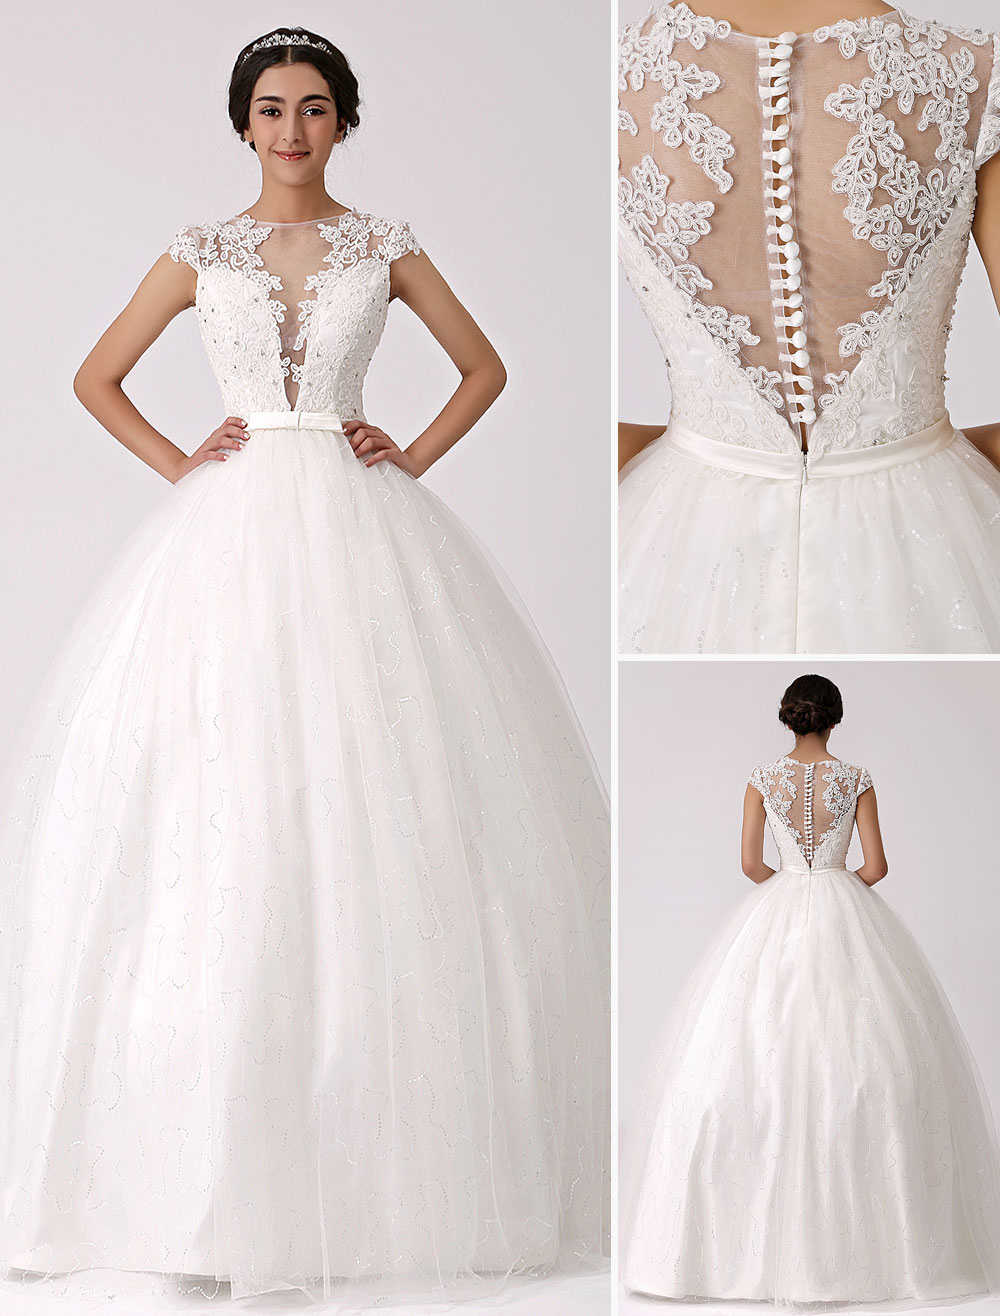 Illusion Plunge Neck Princess Wedding Gown with Sheer Lace Back Milanoo